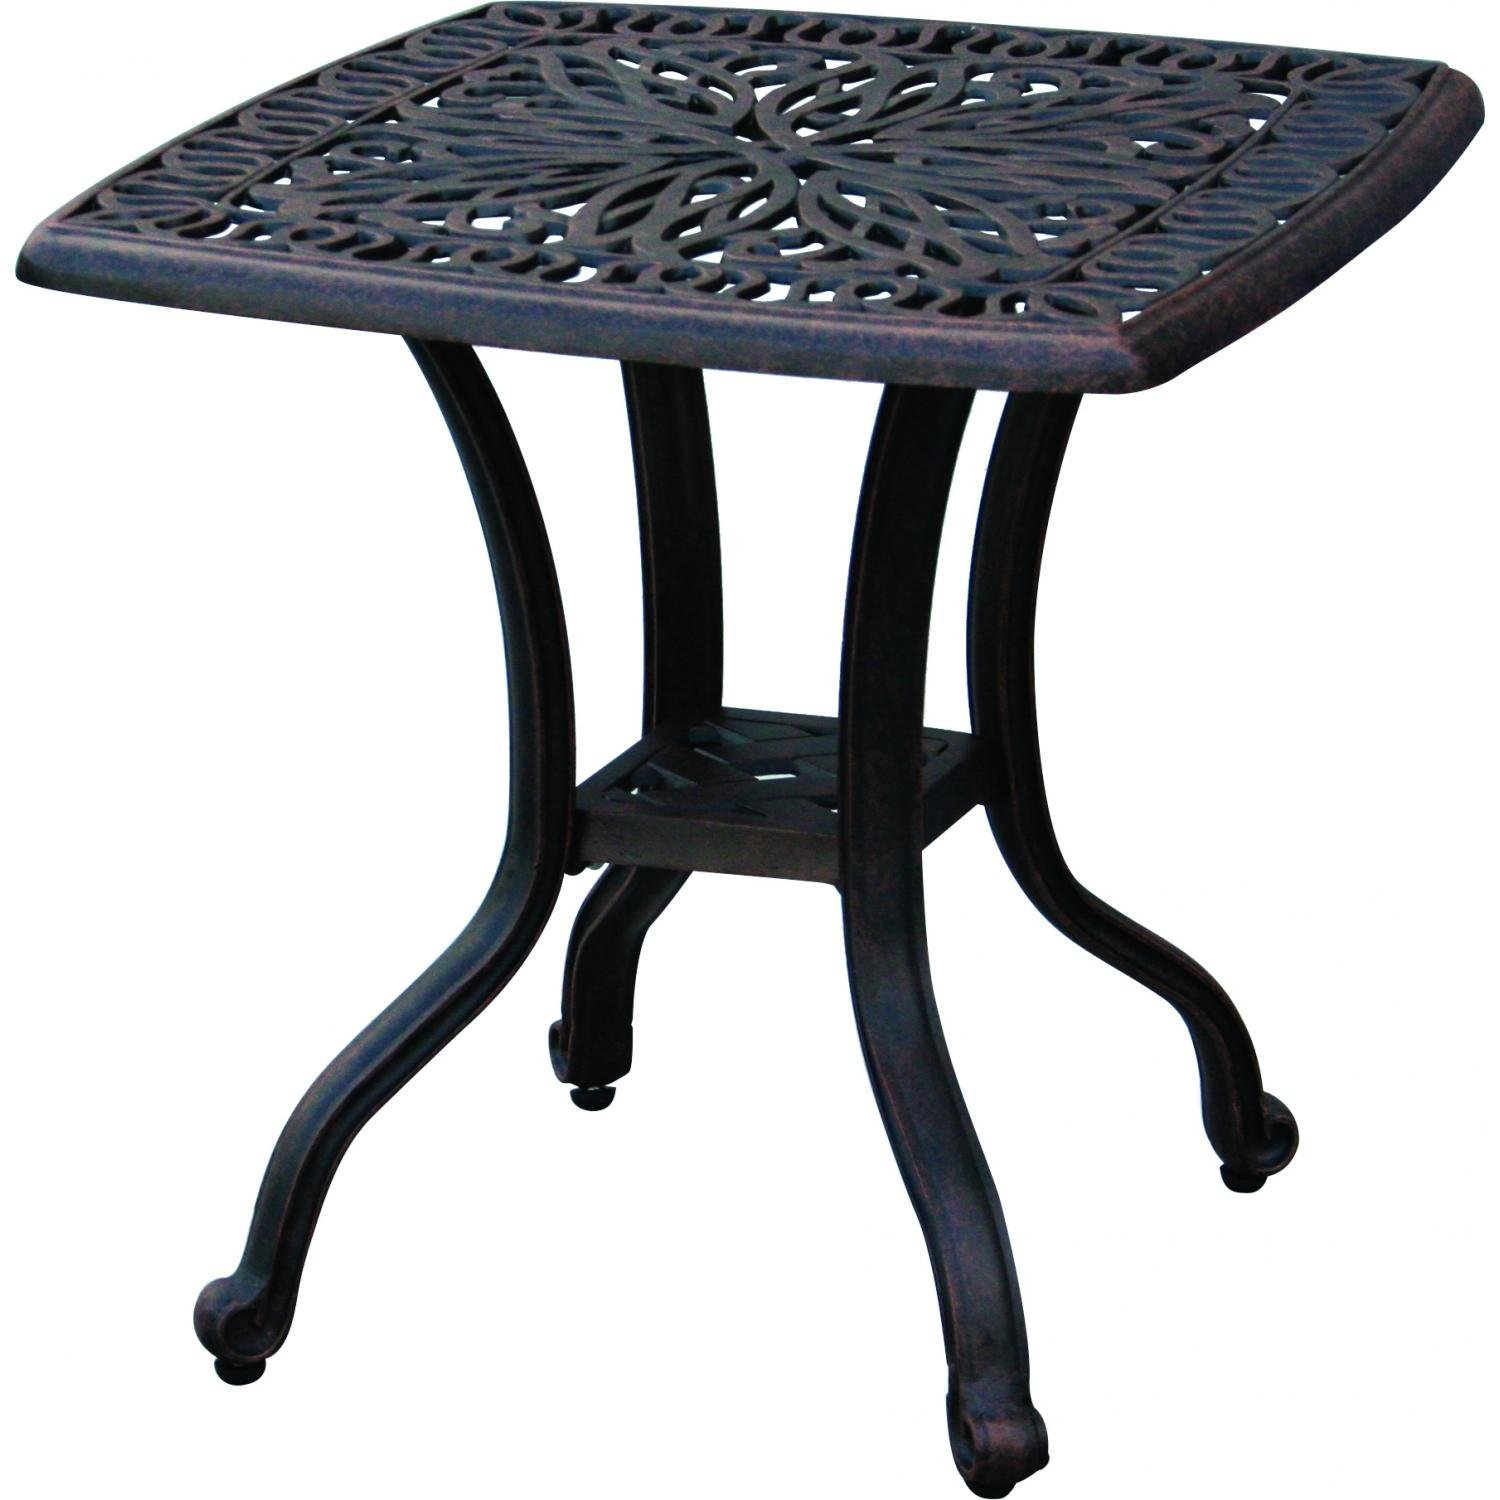 Patio End Table Elisabeth Outdoor Cast Aluminum Furniture